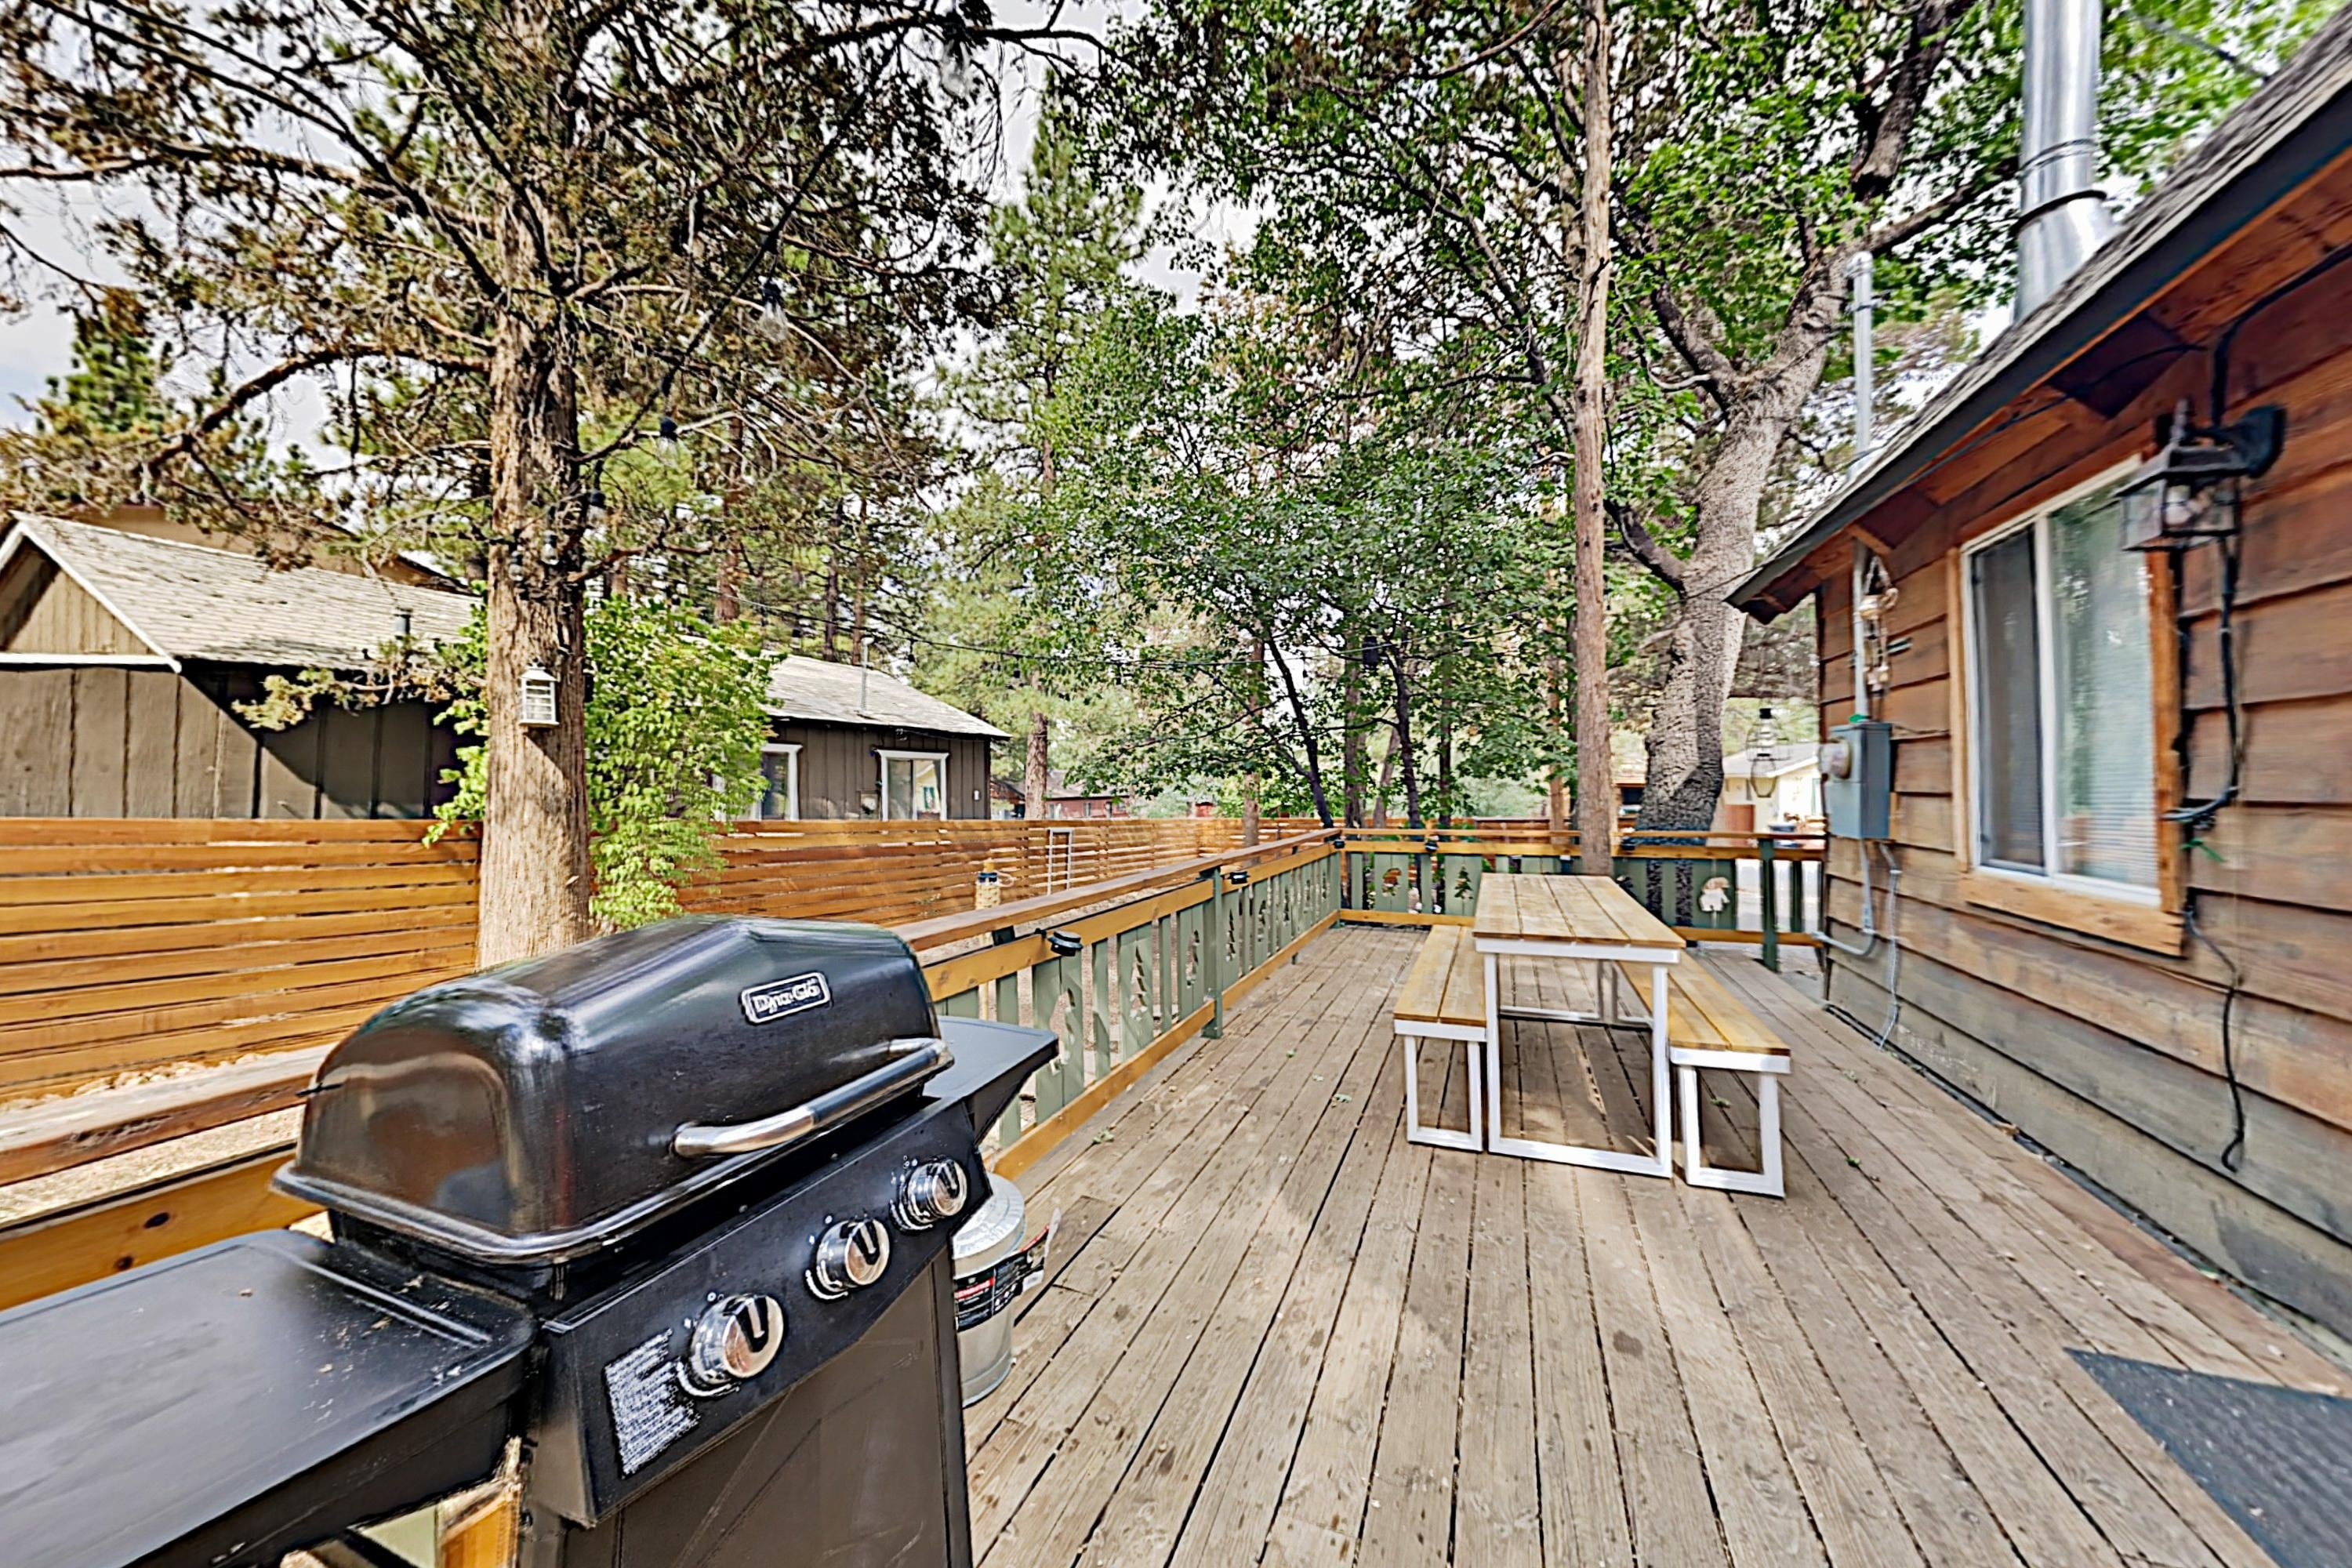 Property Image 2 - Peaceful All-Season Getaway with Modern Upgrades